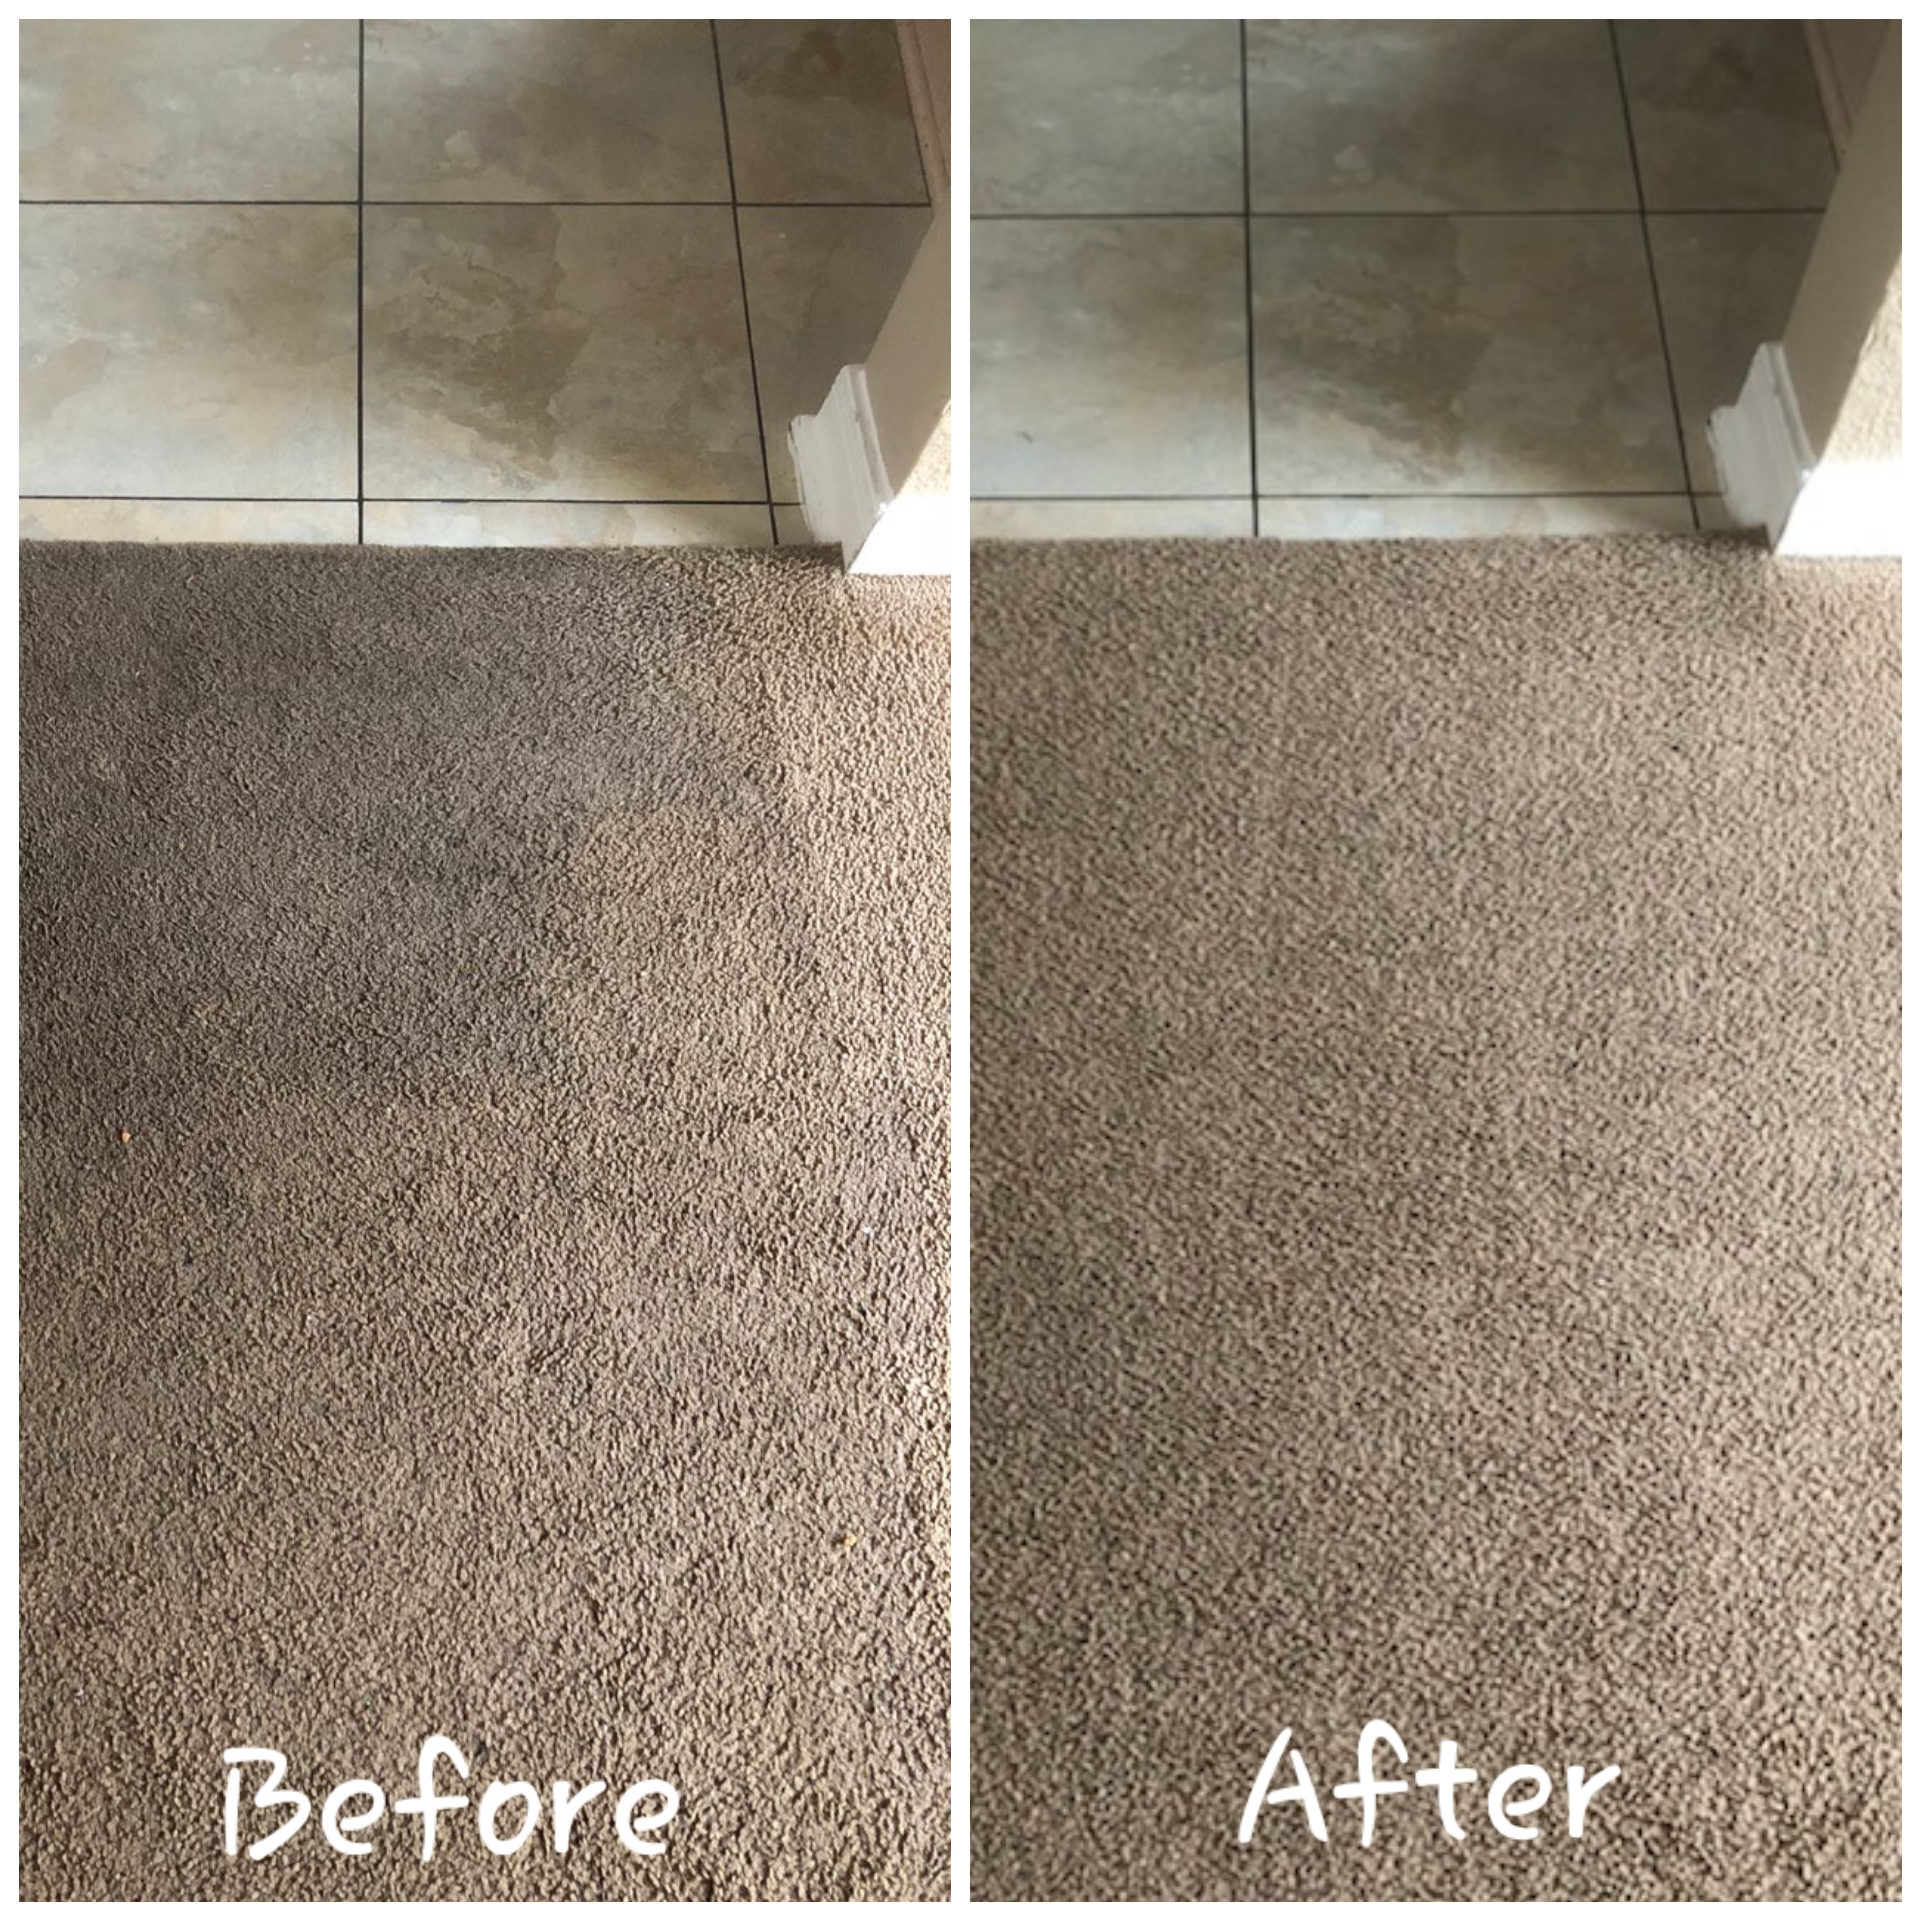 Contact professional carpet cleaner